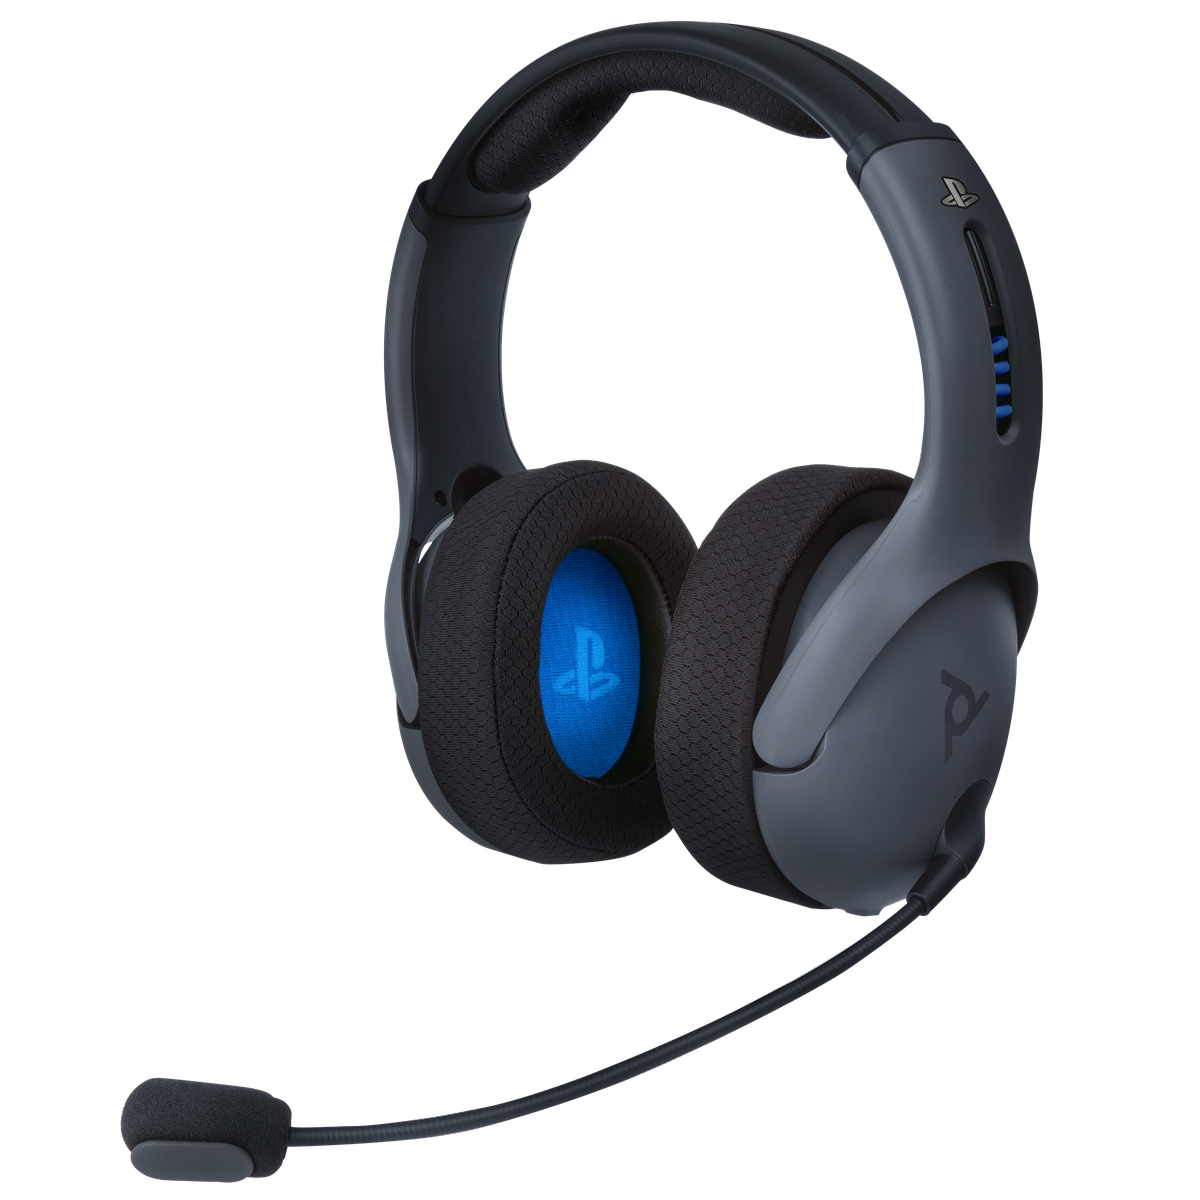 pdp s lvl50 headset the one to have if you re having more than one polygon. Black Bedroom Furniture Sets. Home Design Ideas